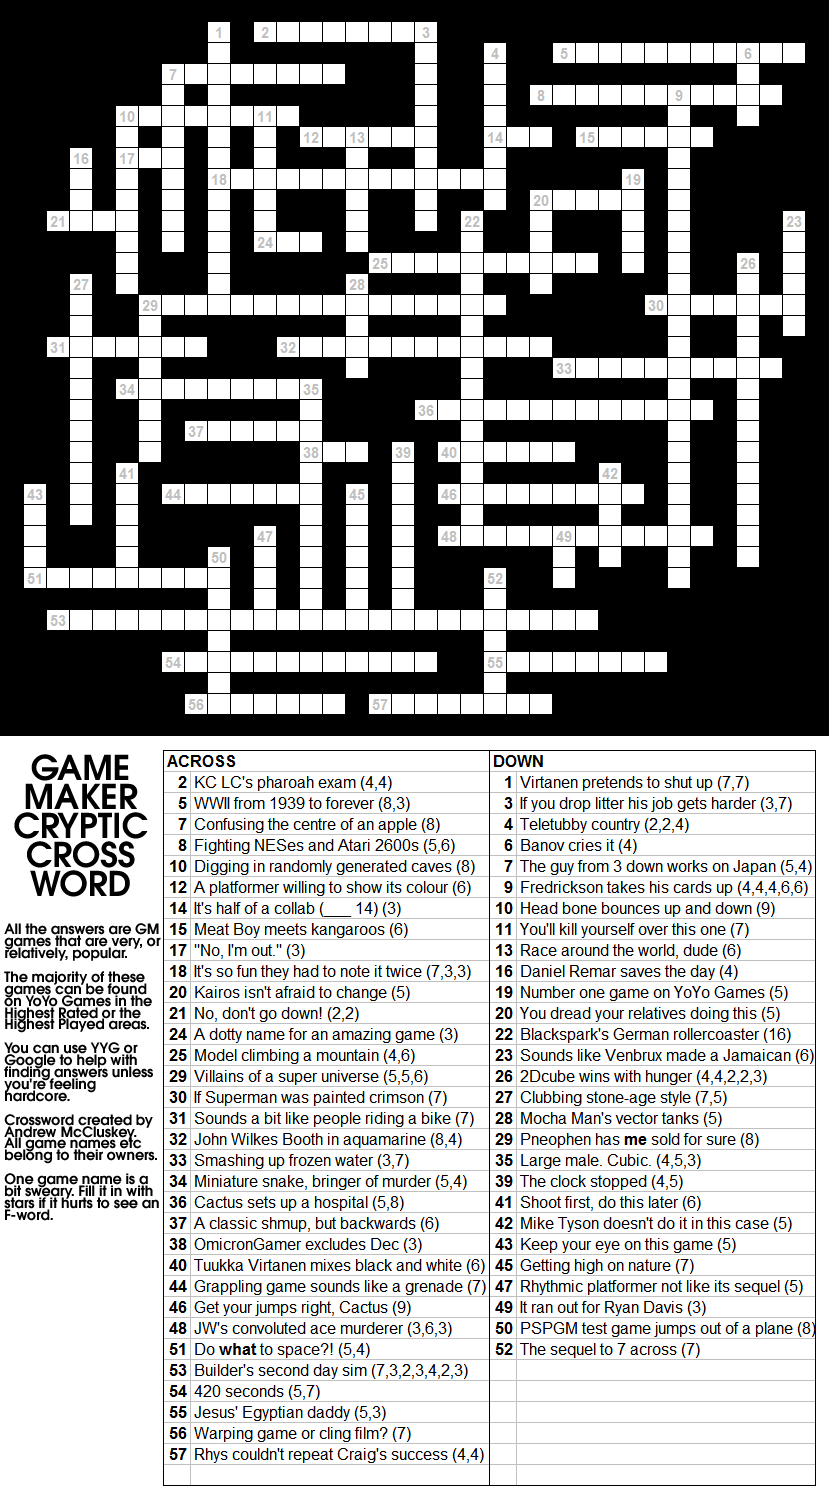 Maker Cryptic Crossword